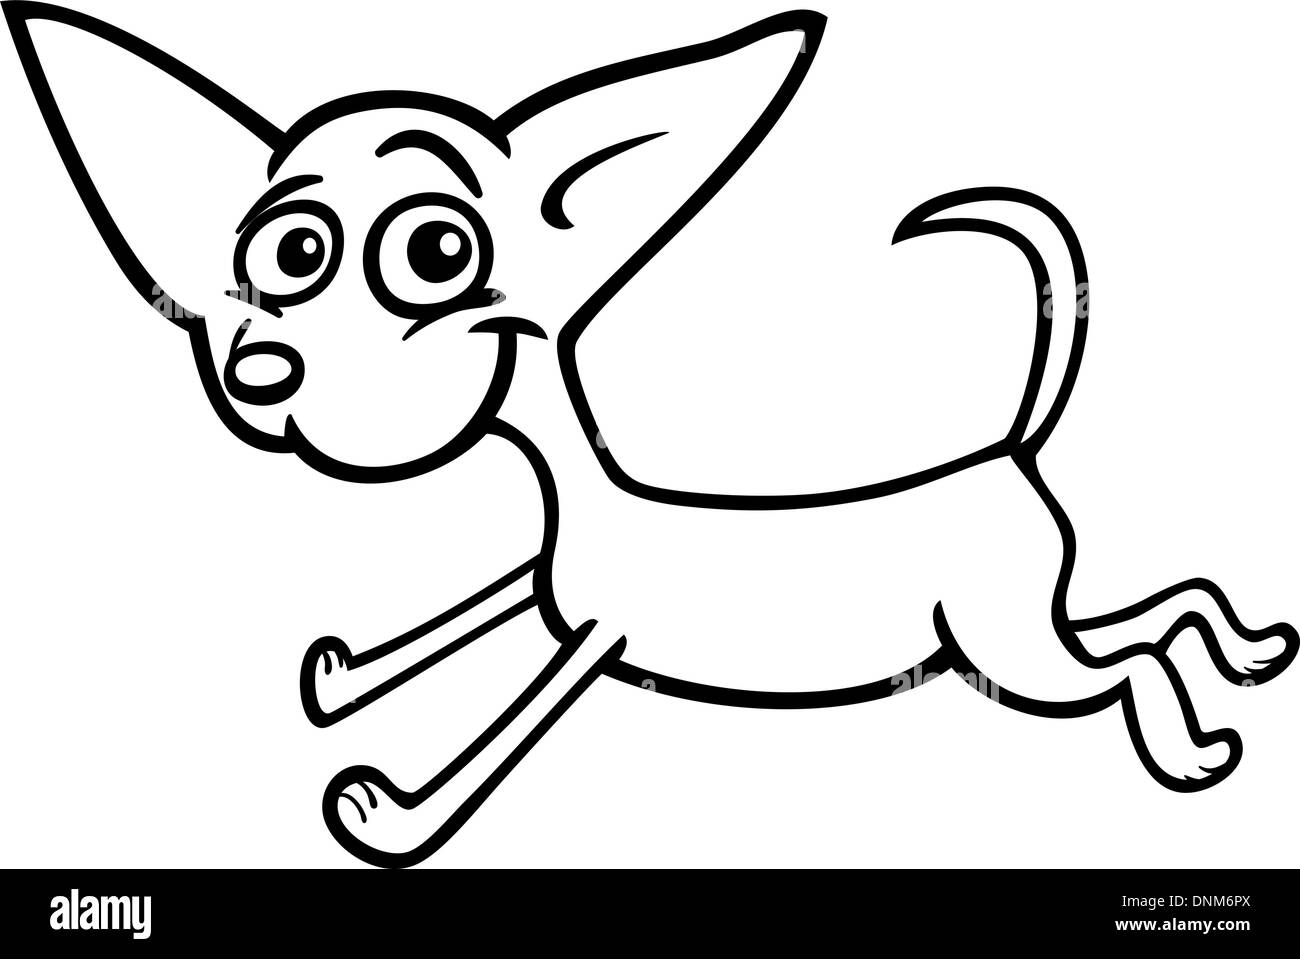 Cartoon Illustration Of Funny Purebred Running Chihuahua Dog For Coloring Book Or Page